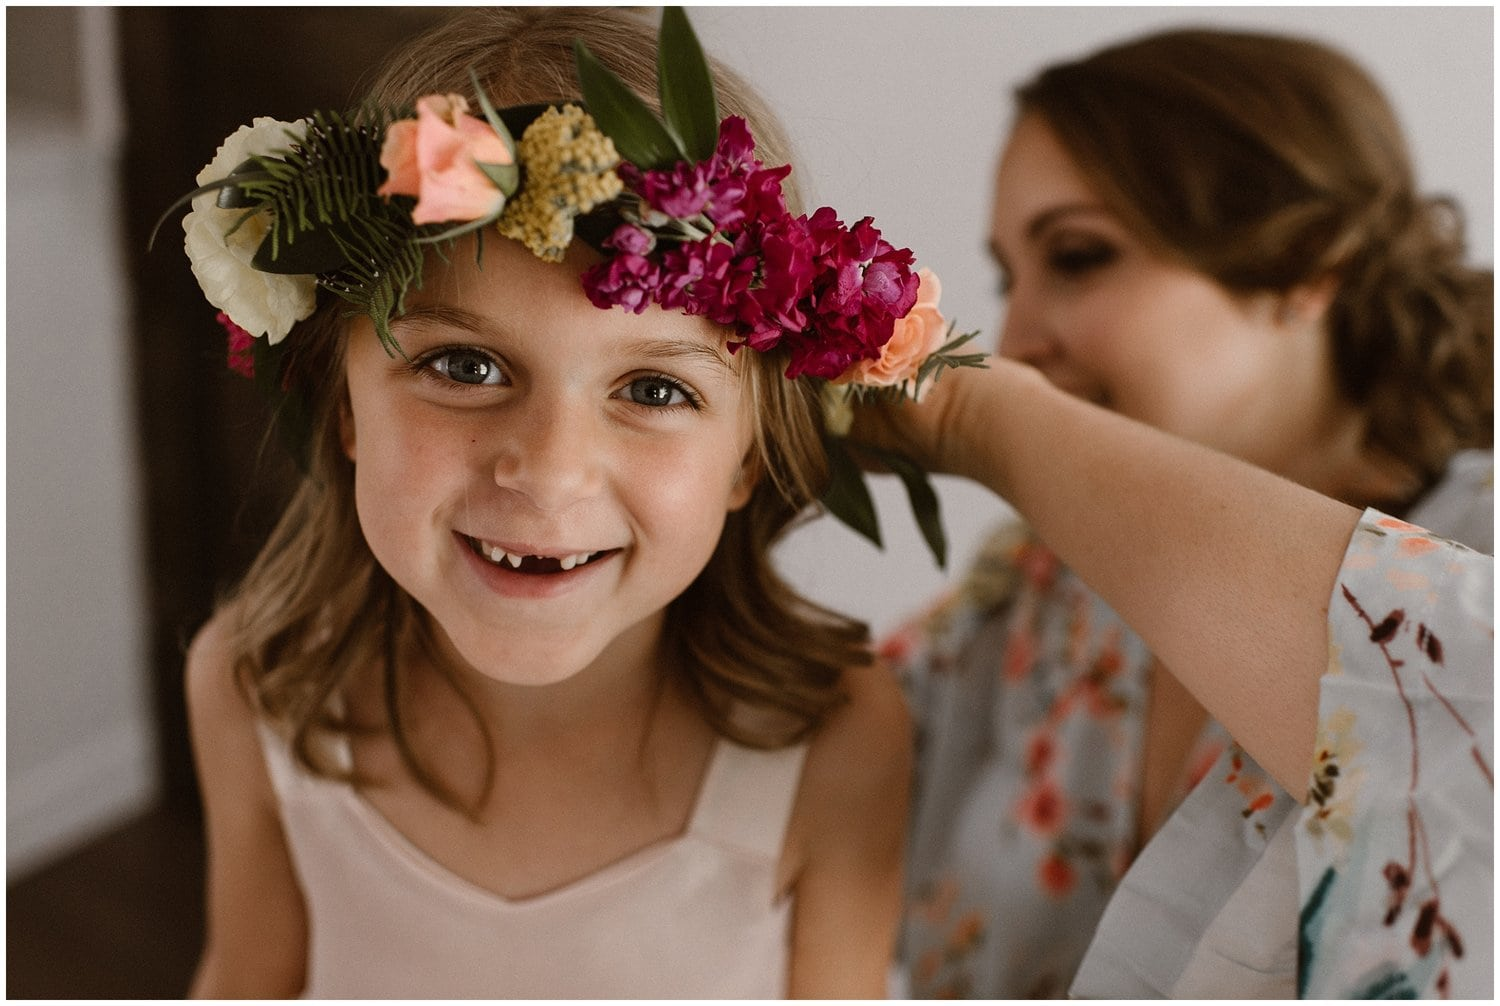 Little girl wearing a flower crown smiles at the camera.